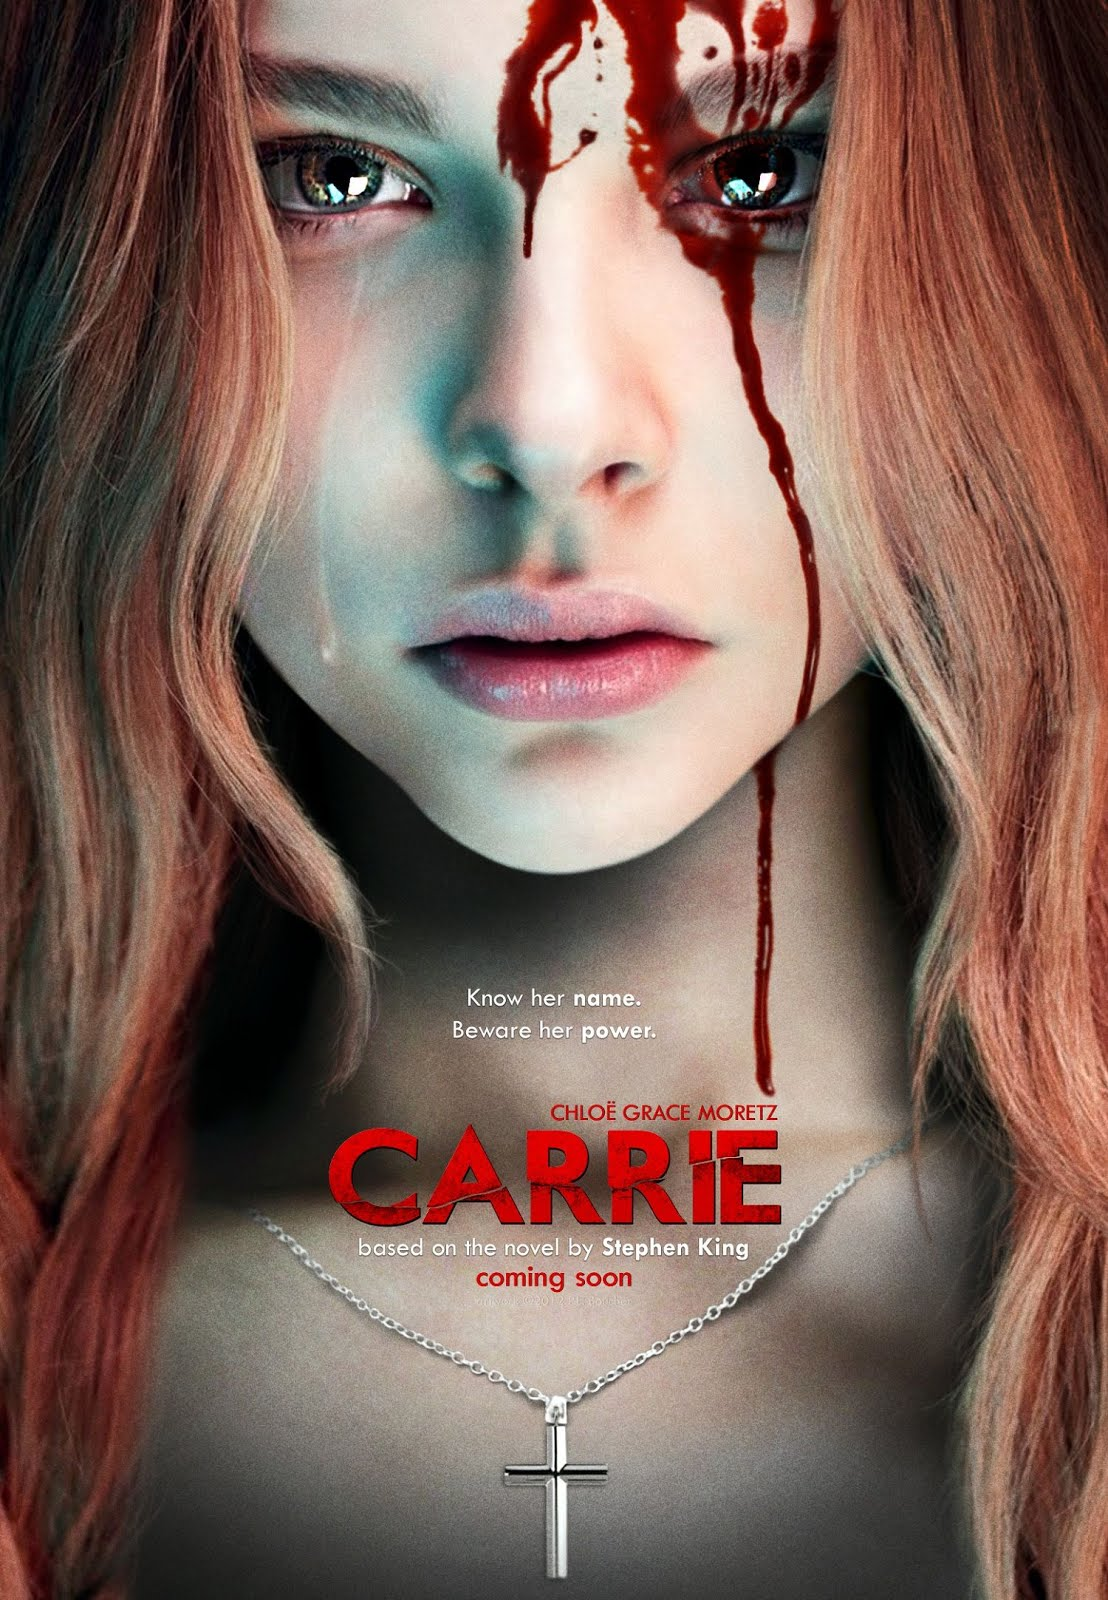 http://teenagethunder.files.wordpress.com/2013/10/carrie2013.jpg